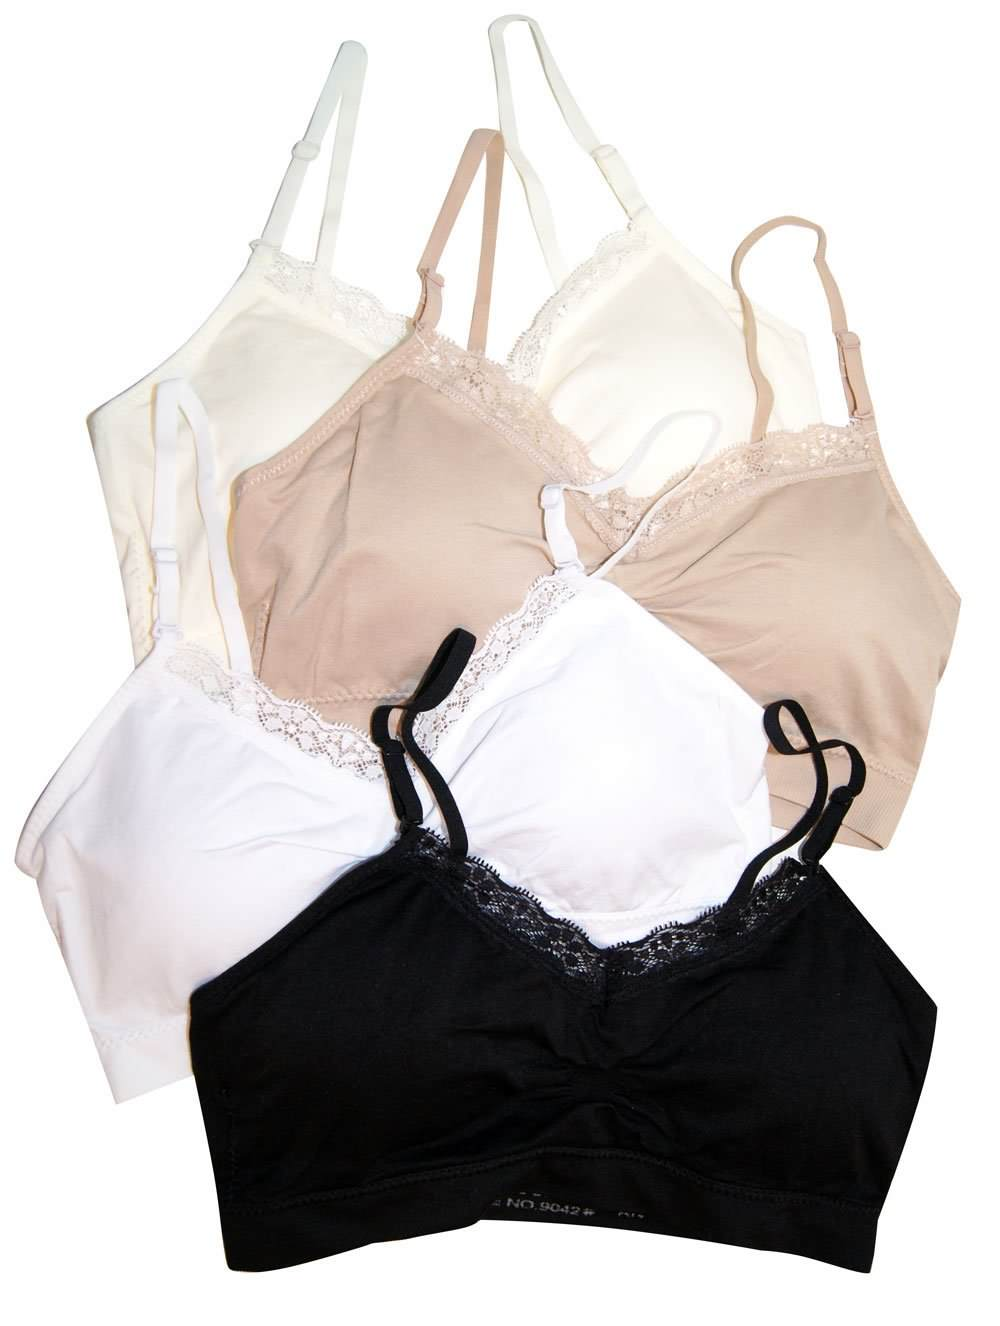 Coobie Bra - Portland, OR - Paloma Clothing